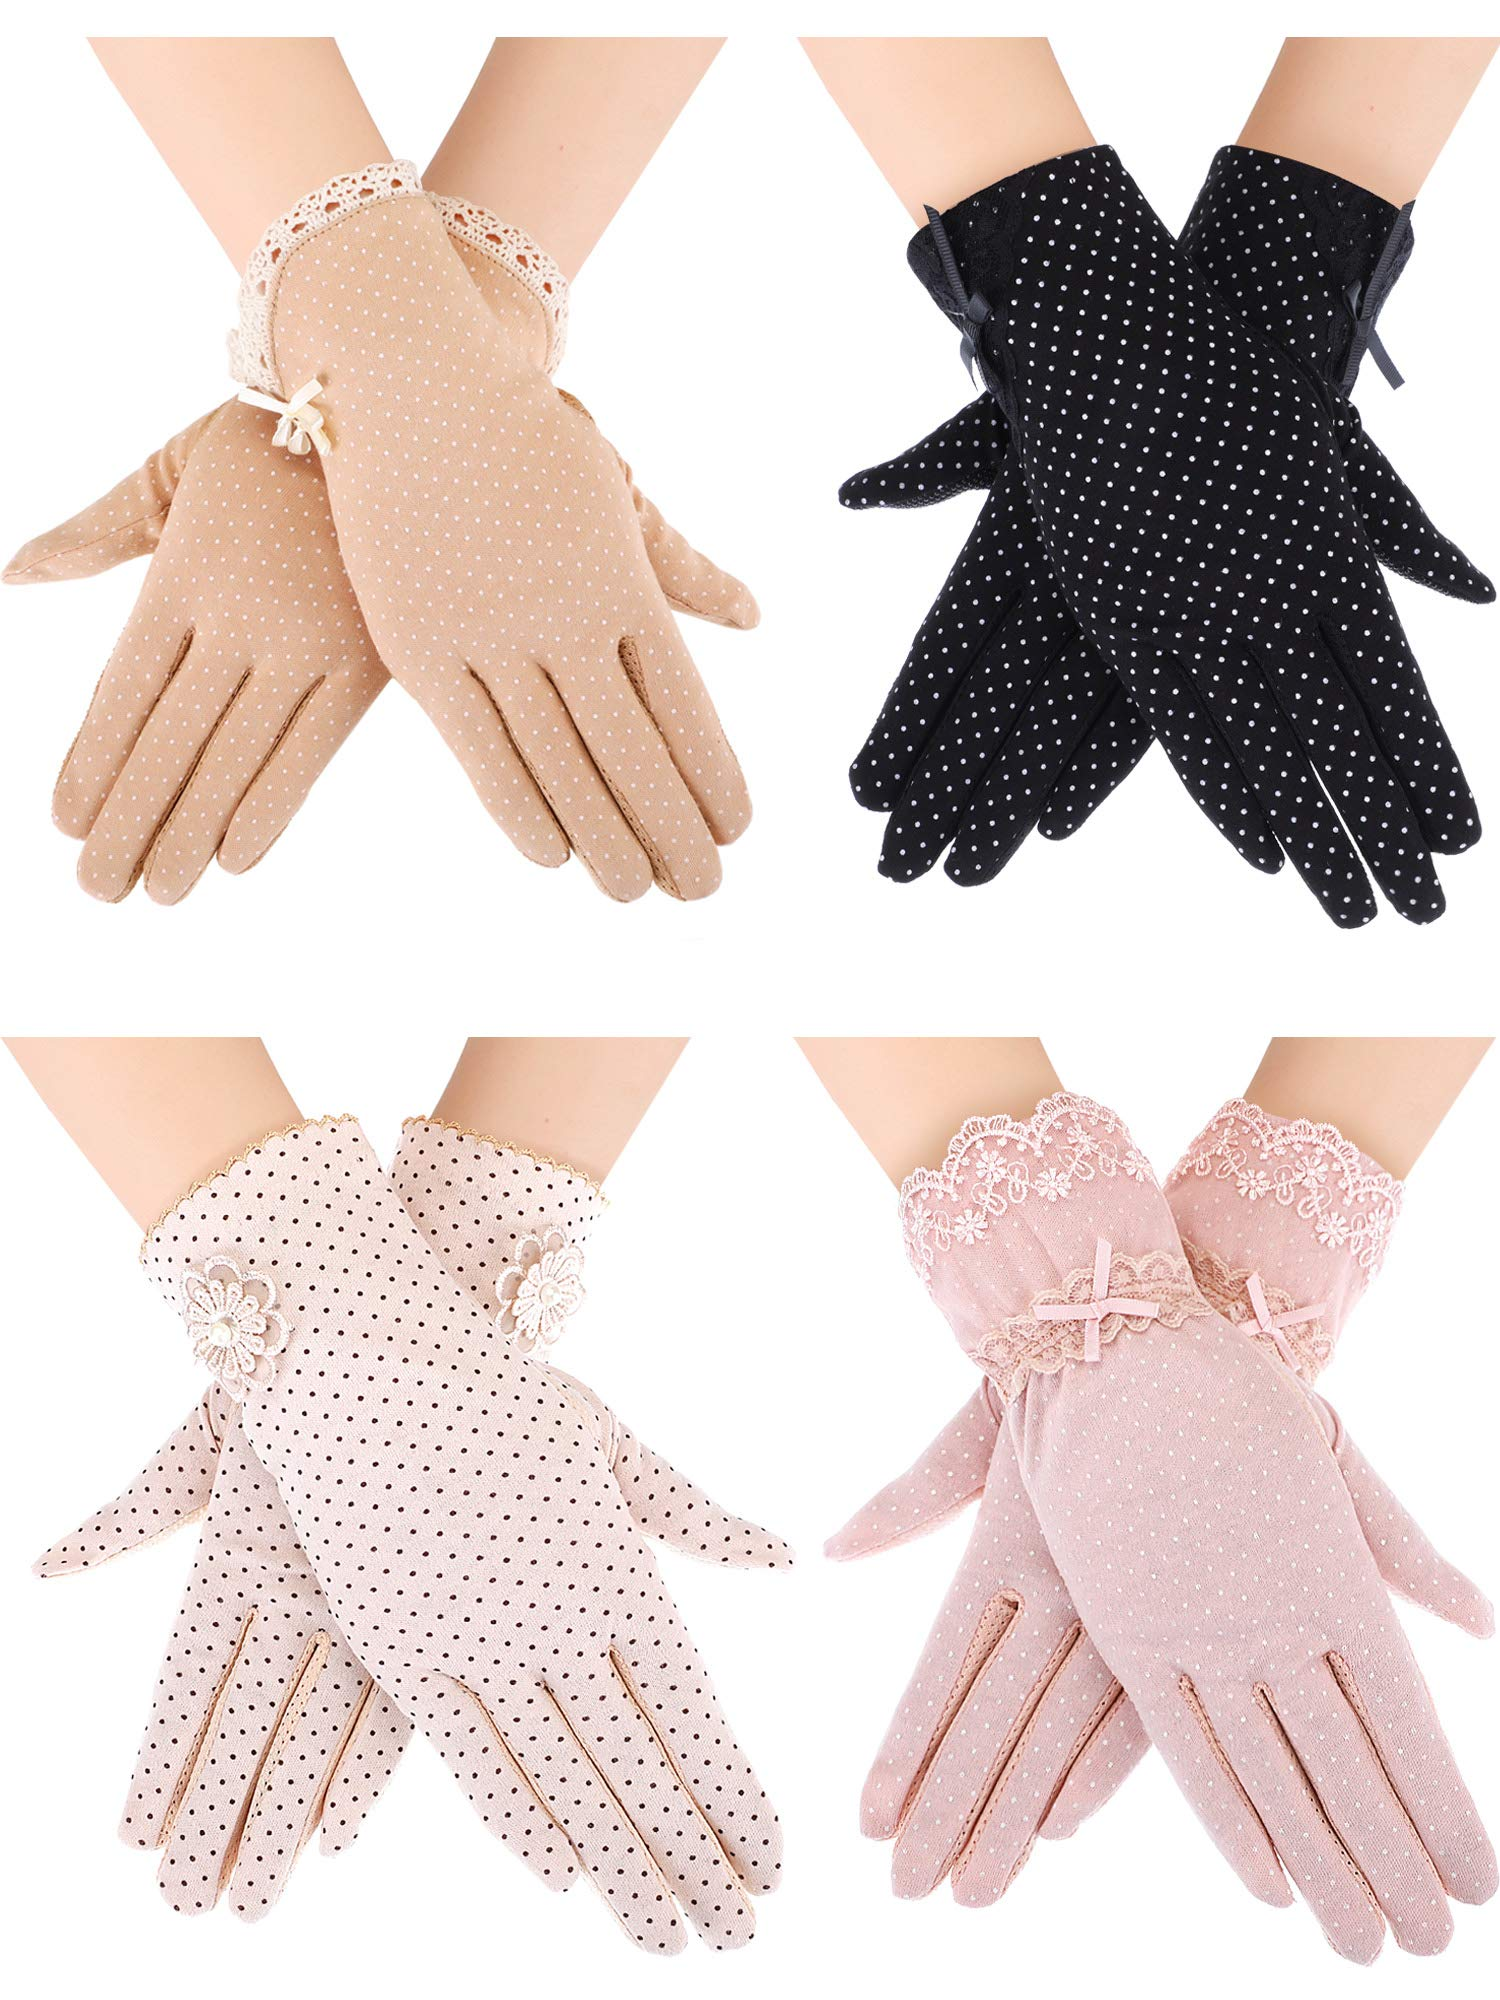 Blulu 4 Pairs Summer UV Protection Sunblock Gloves Non-slip Touchscreen Driving Gloves Bowknot Floral Gloves for Women Girls (Black 2, Khaki 2, Pink 2, Beige 2) by Blulu